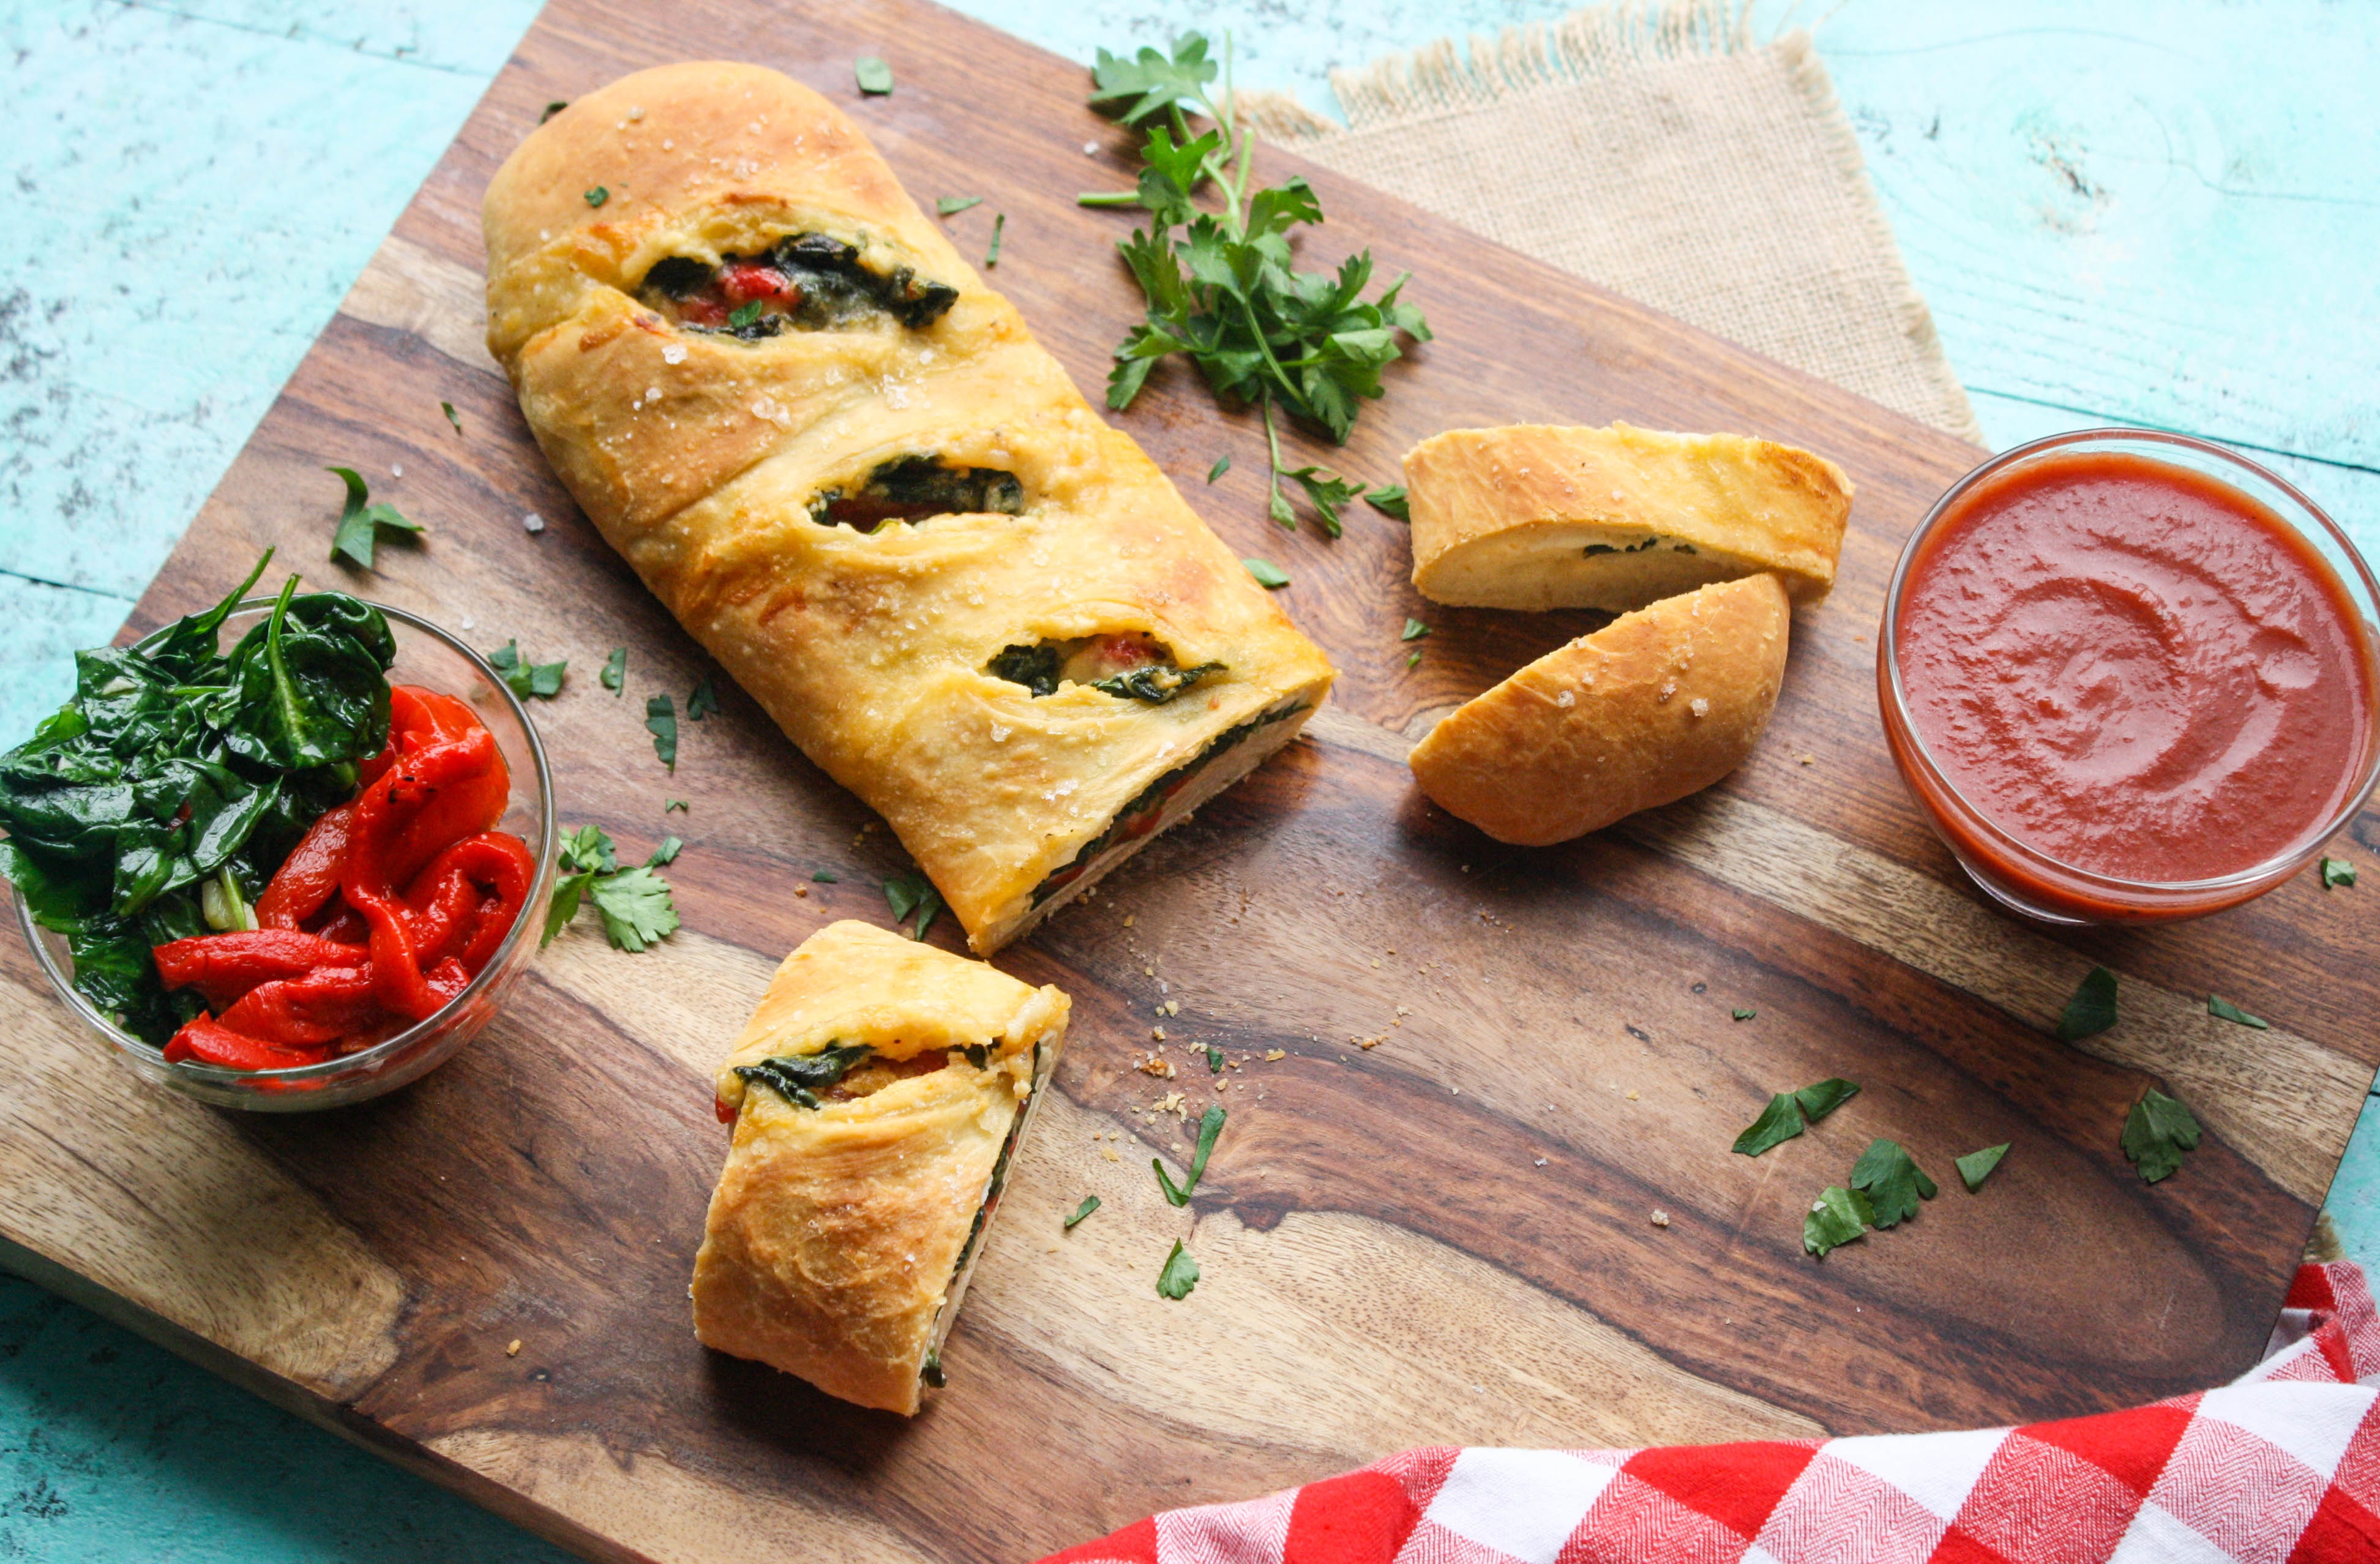 Spinach and Roasted Red Pepper Stromboli is filled with delicious ingredients and it's so fun to serve! You'll love this pizza-like dish.